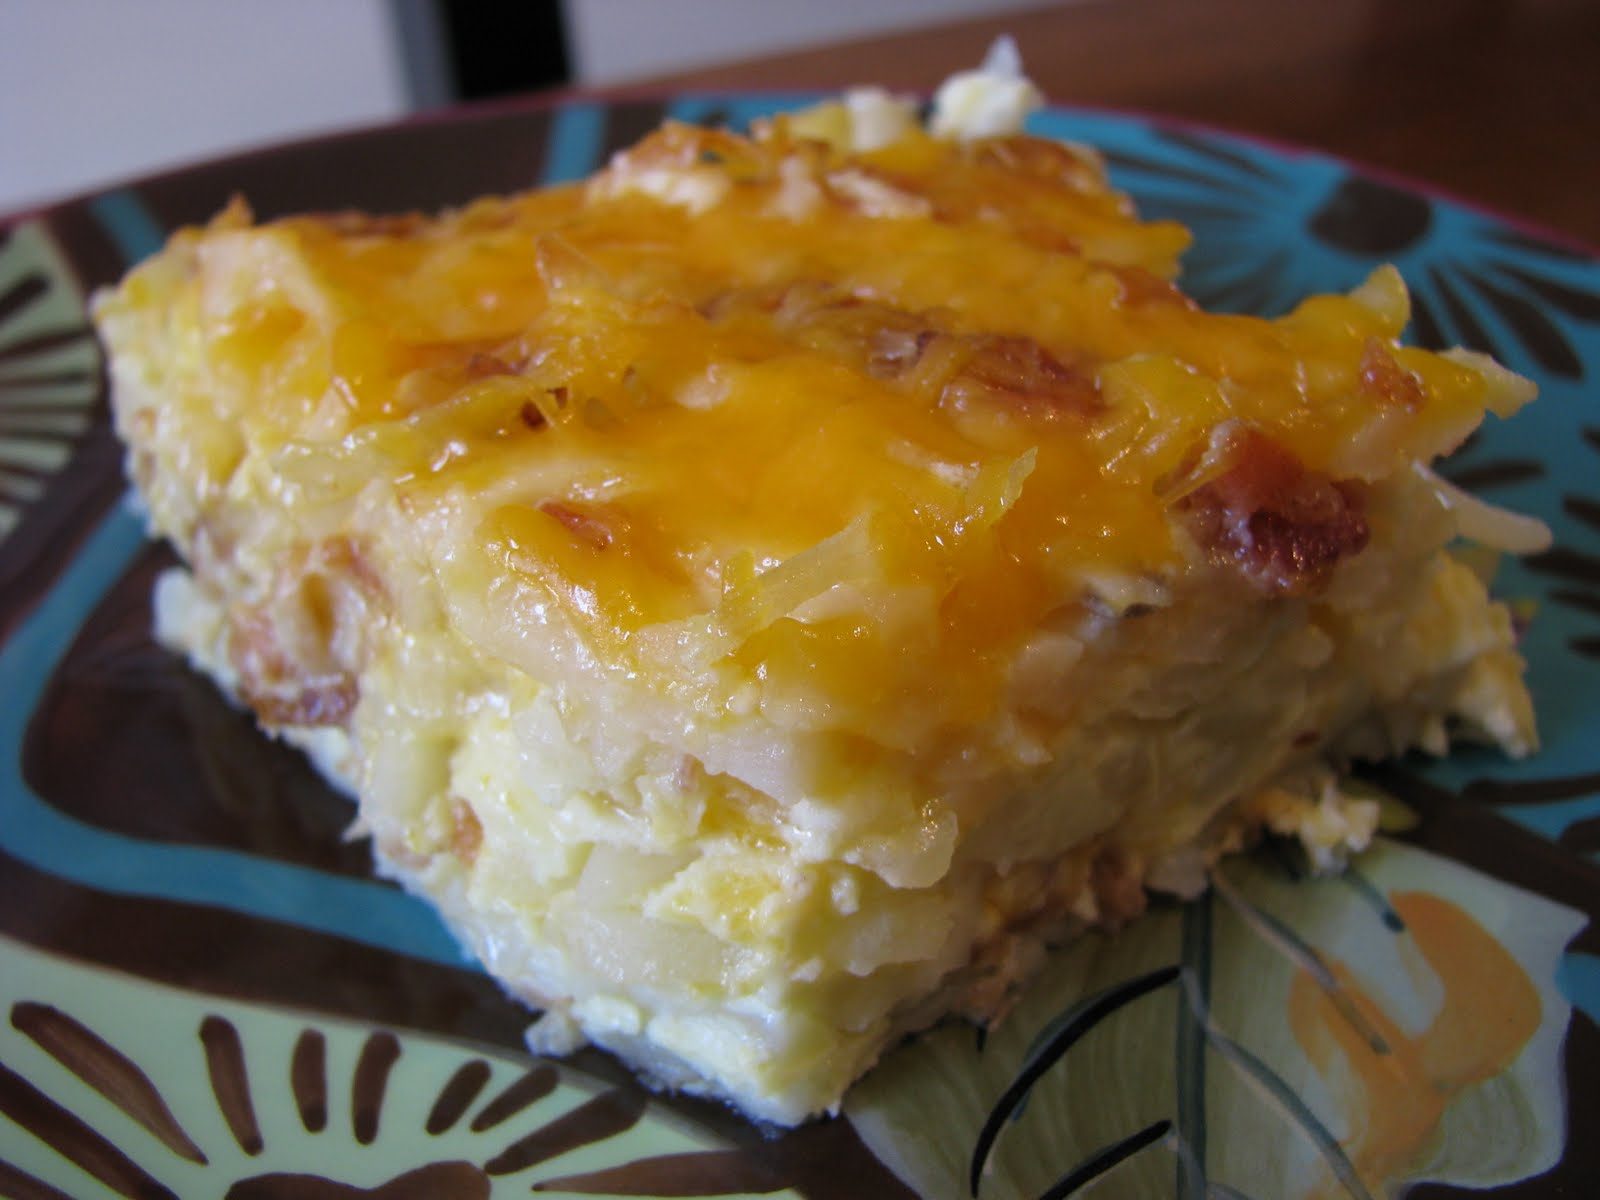 This post handles problem of what to fix for brunch and offers an updated recipe of an old classic crummy ham dish.